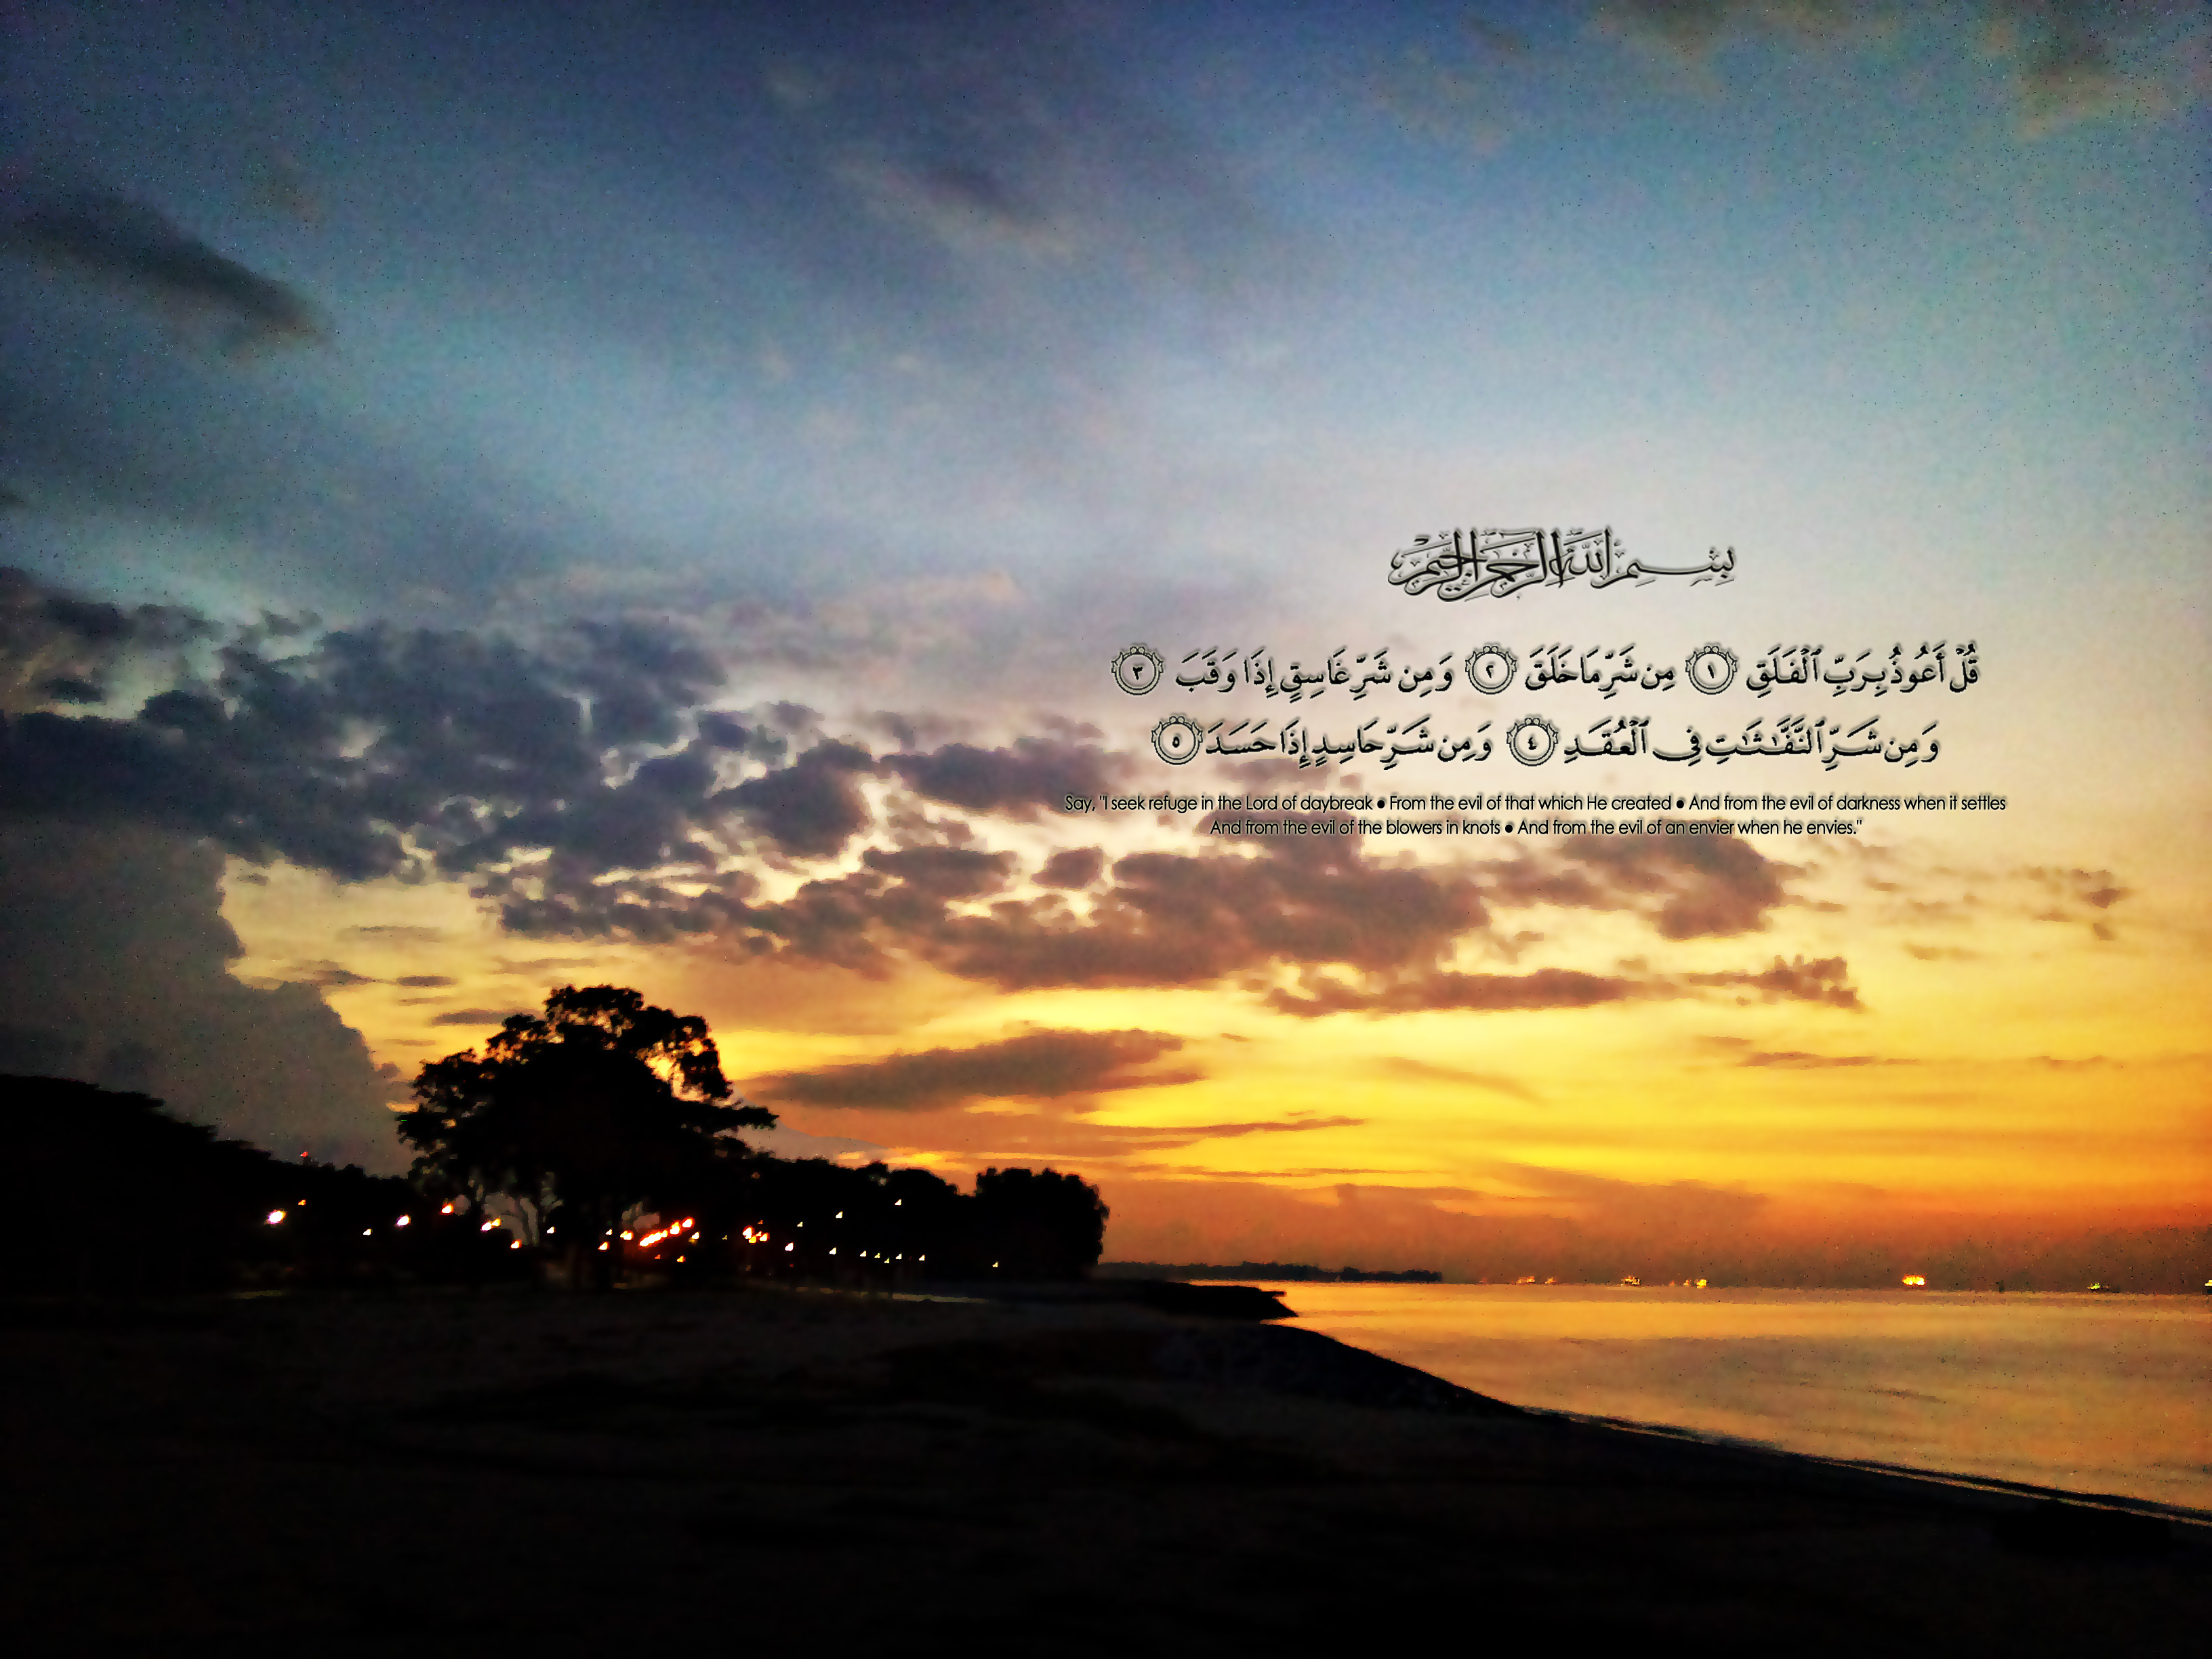 Islamic Quotes In Tamil Wallpapers Wallpaper To Be A Good Servant Of Allah